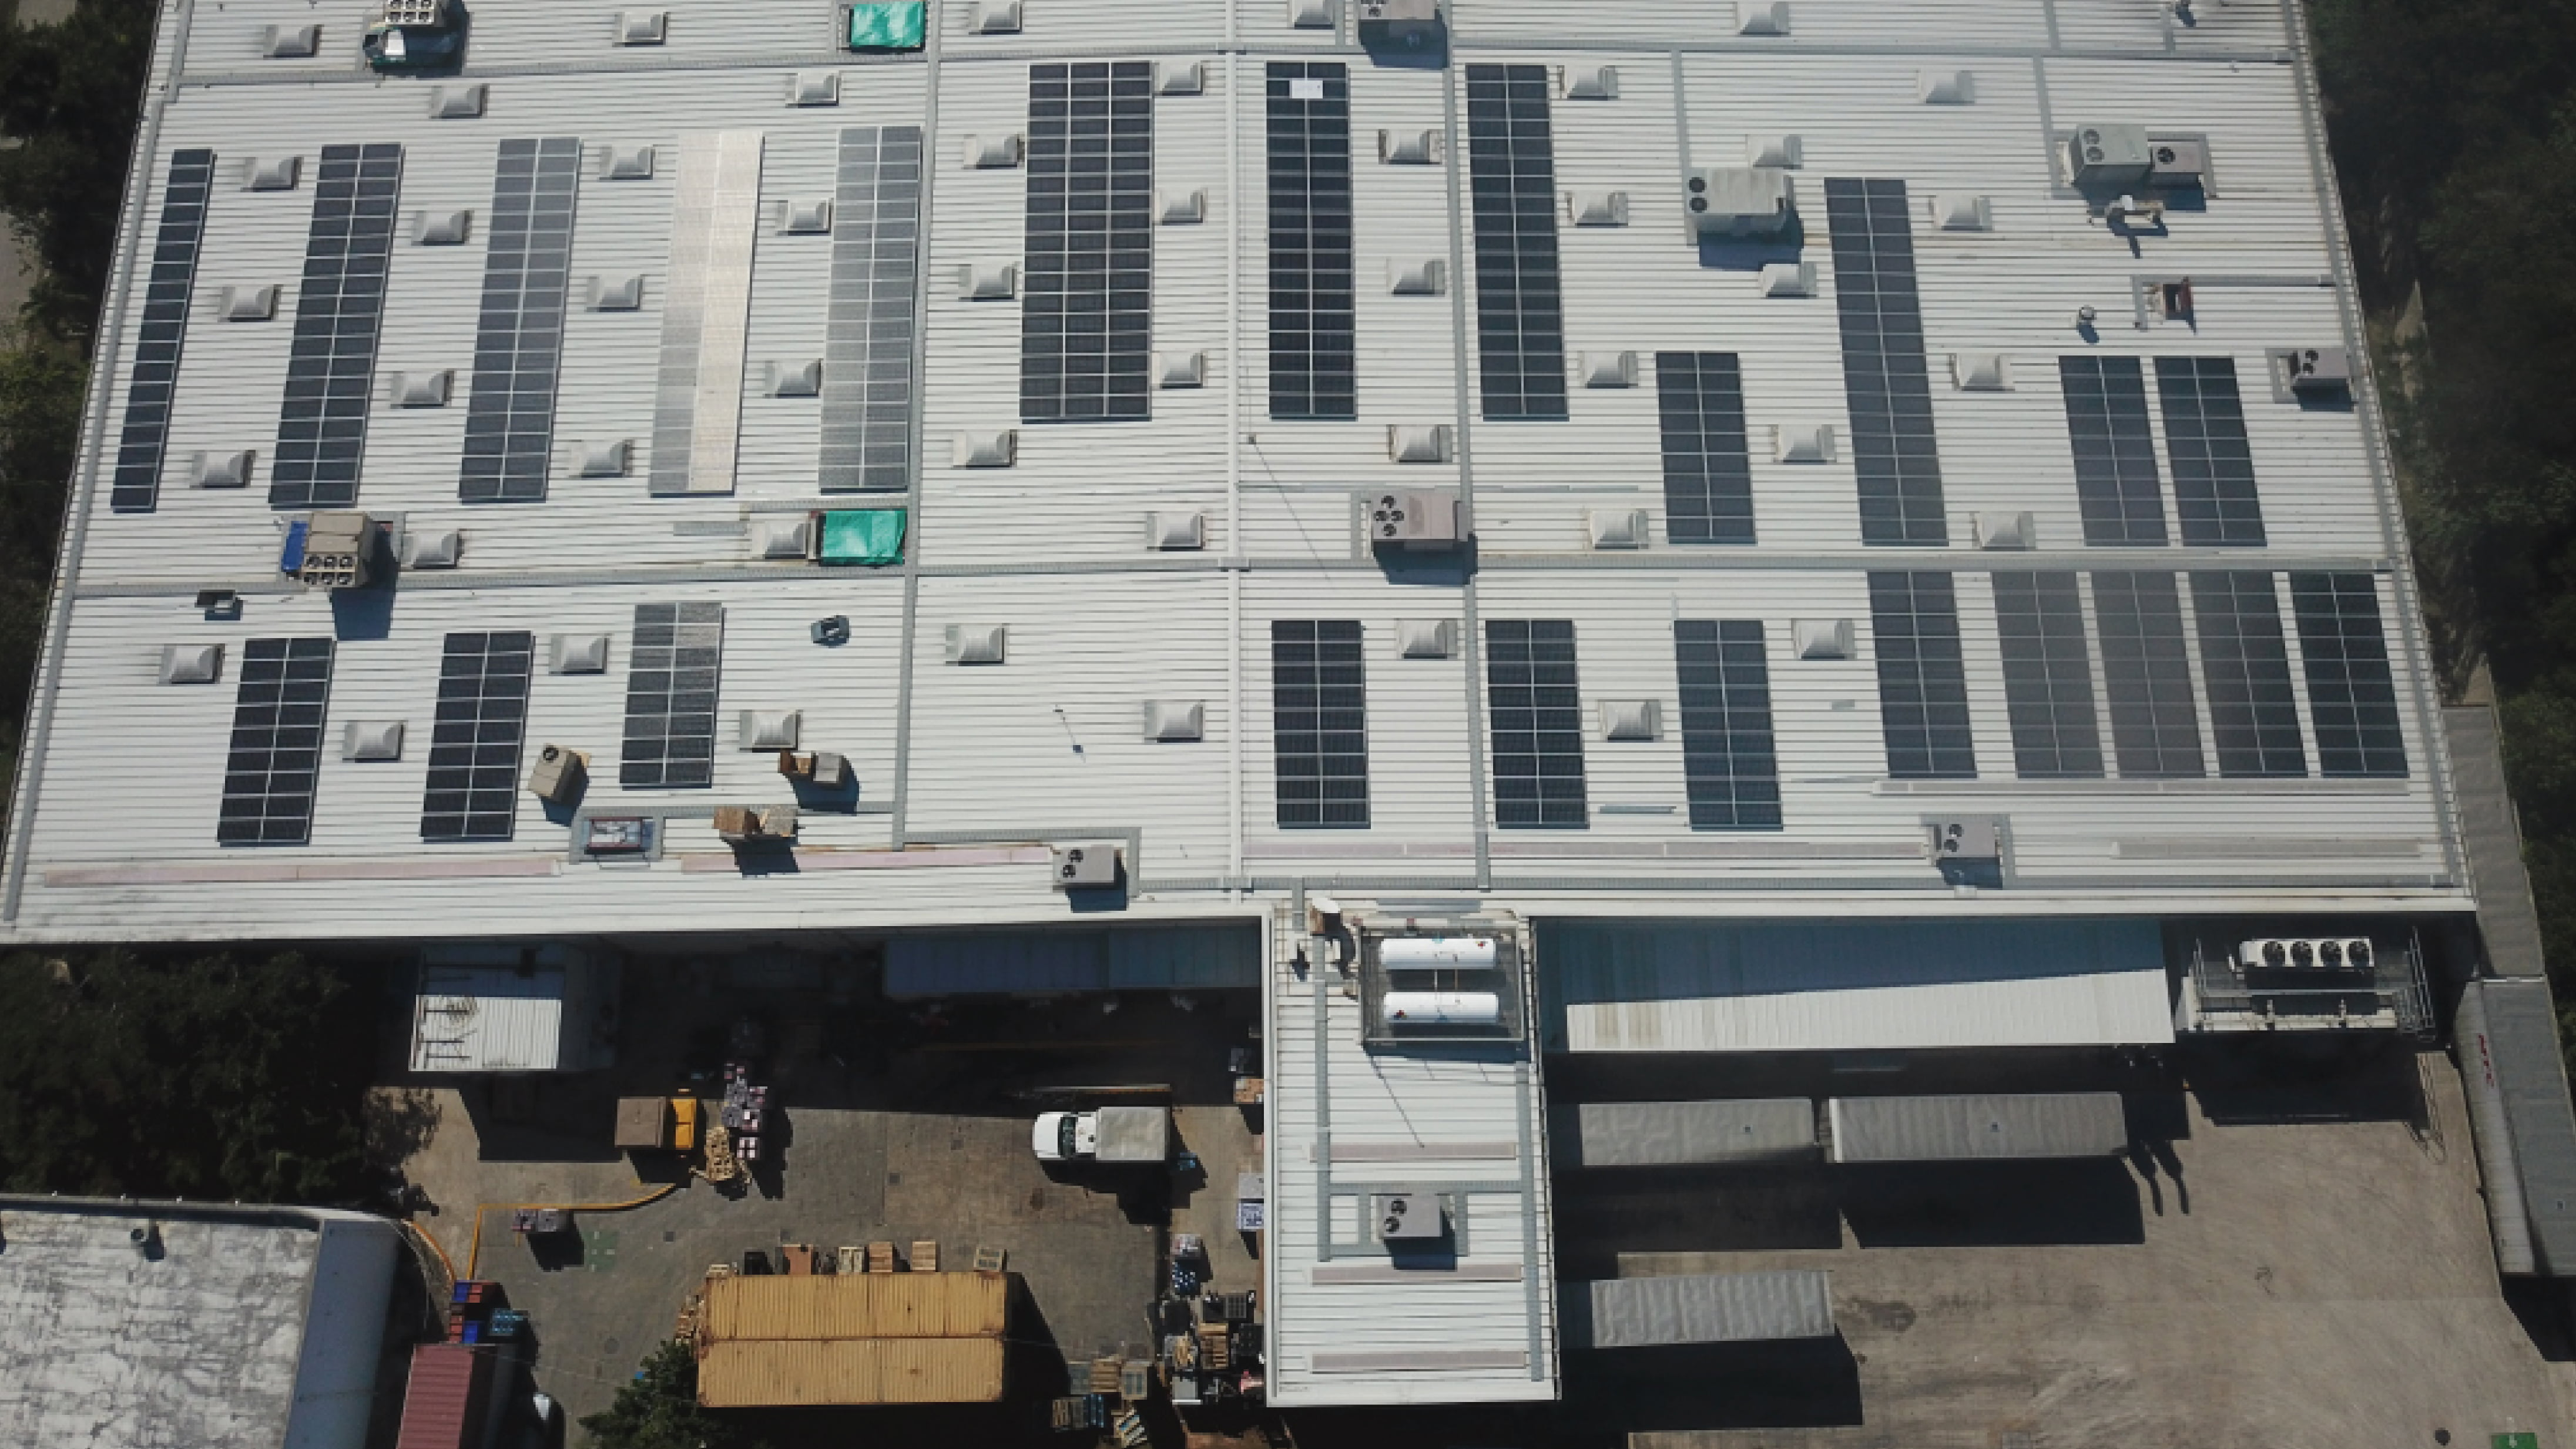 Walmart solar panels in Mexico